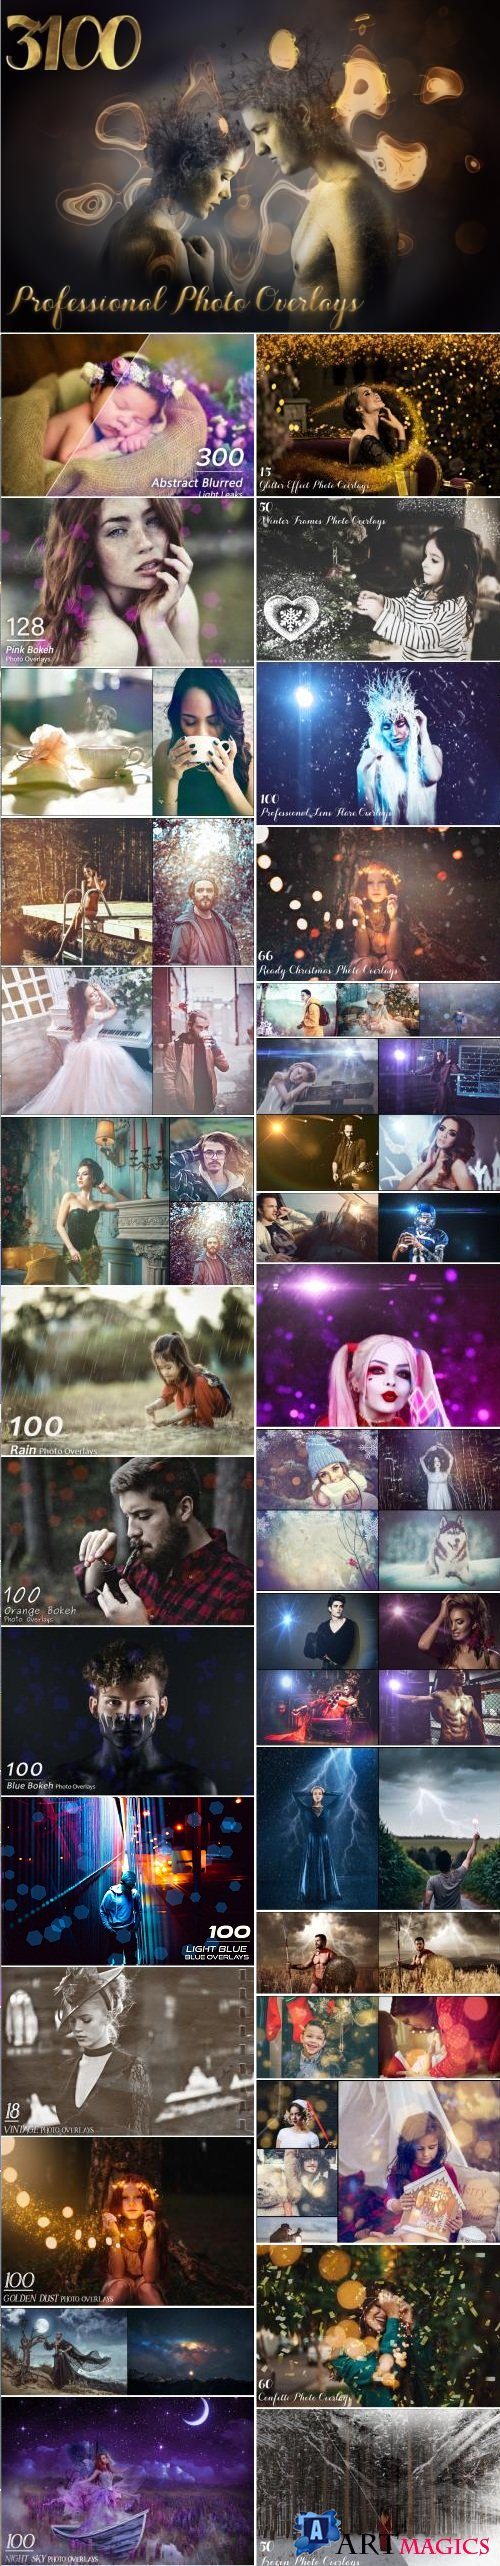 3108 Professional Photo Overlays - 3520485